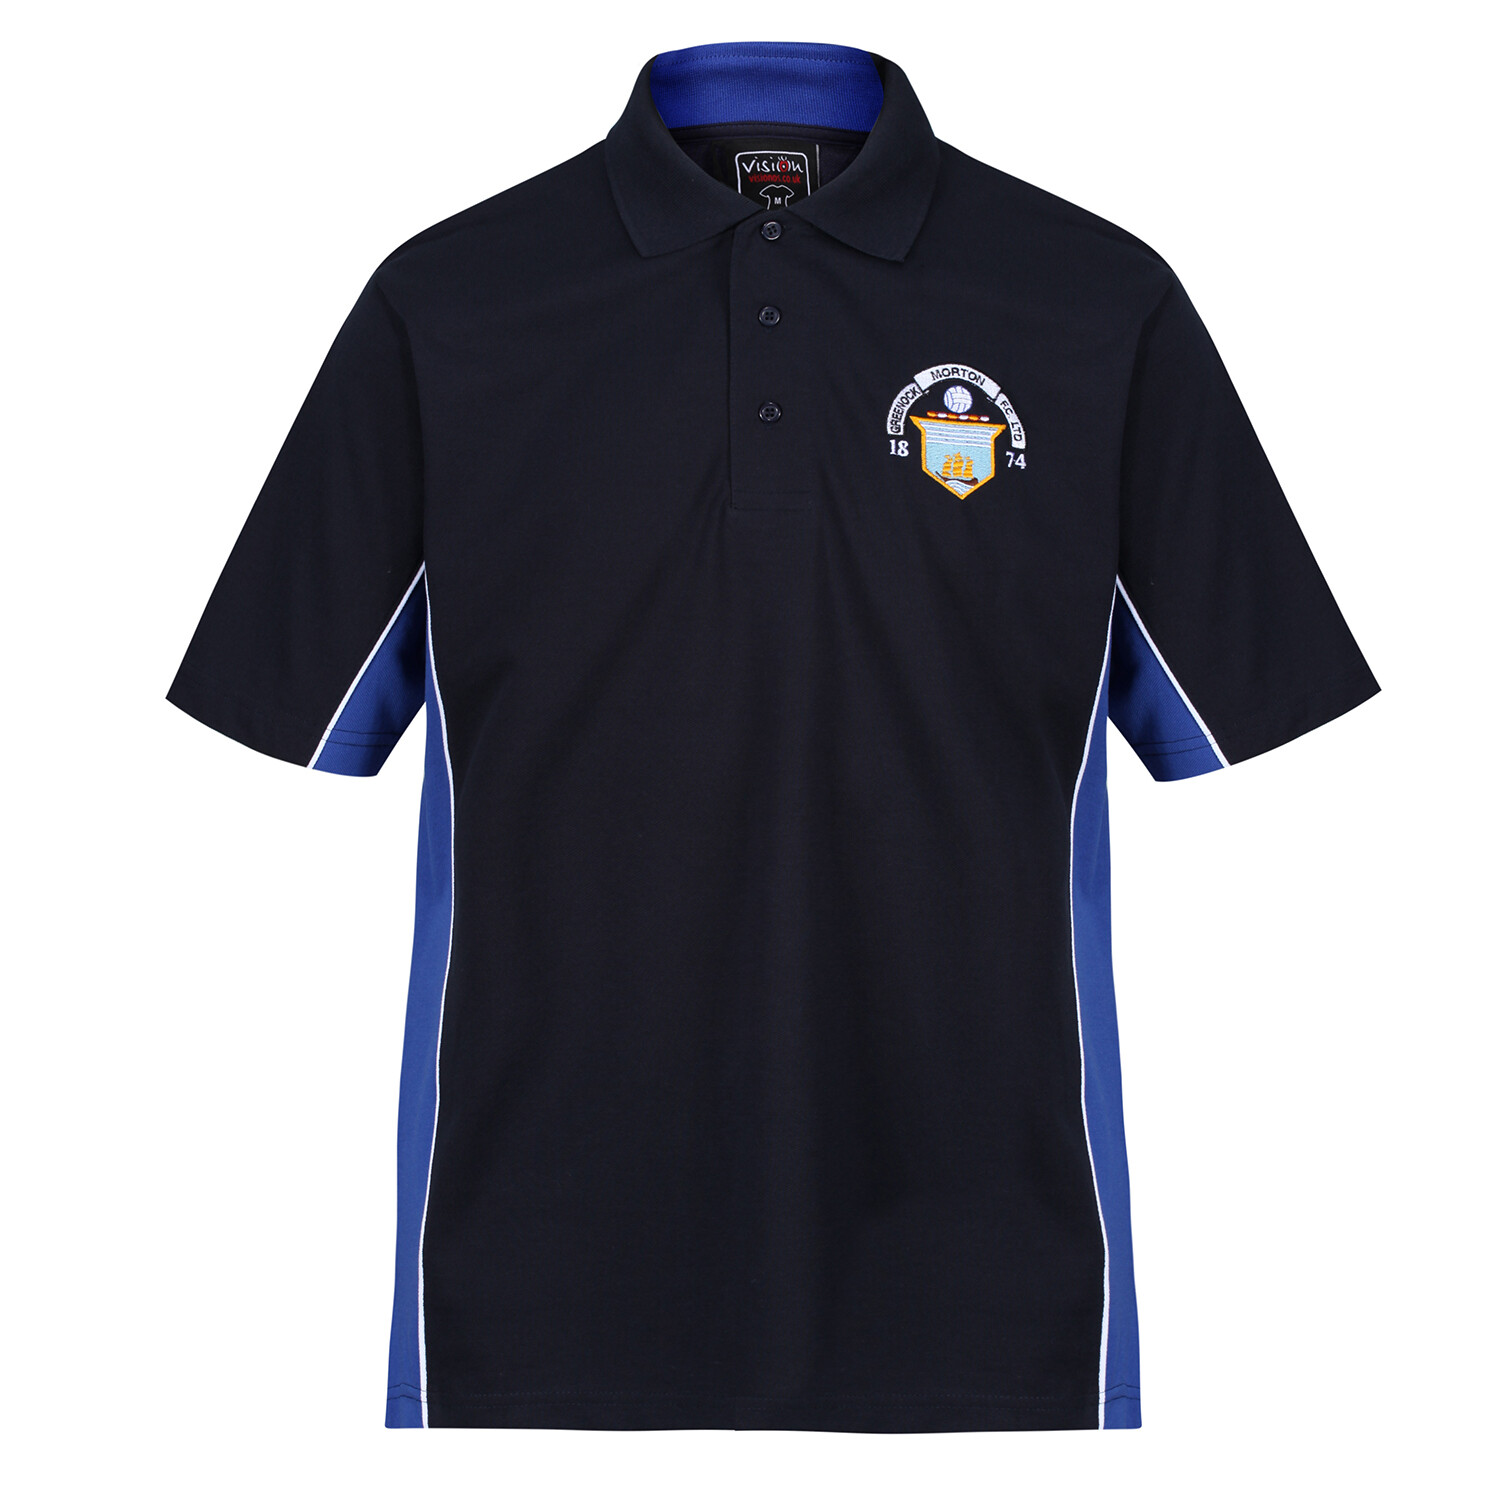 Morton 'Navy-Royal-White' Polo Shirt (RCSKK475)